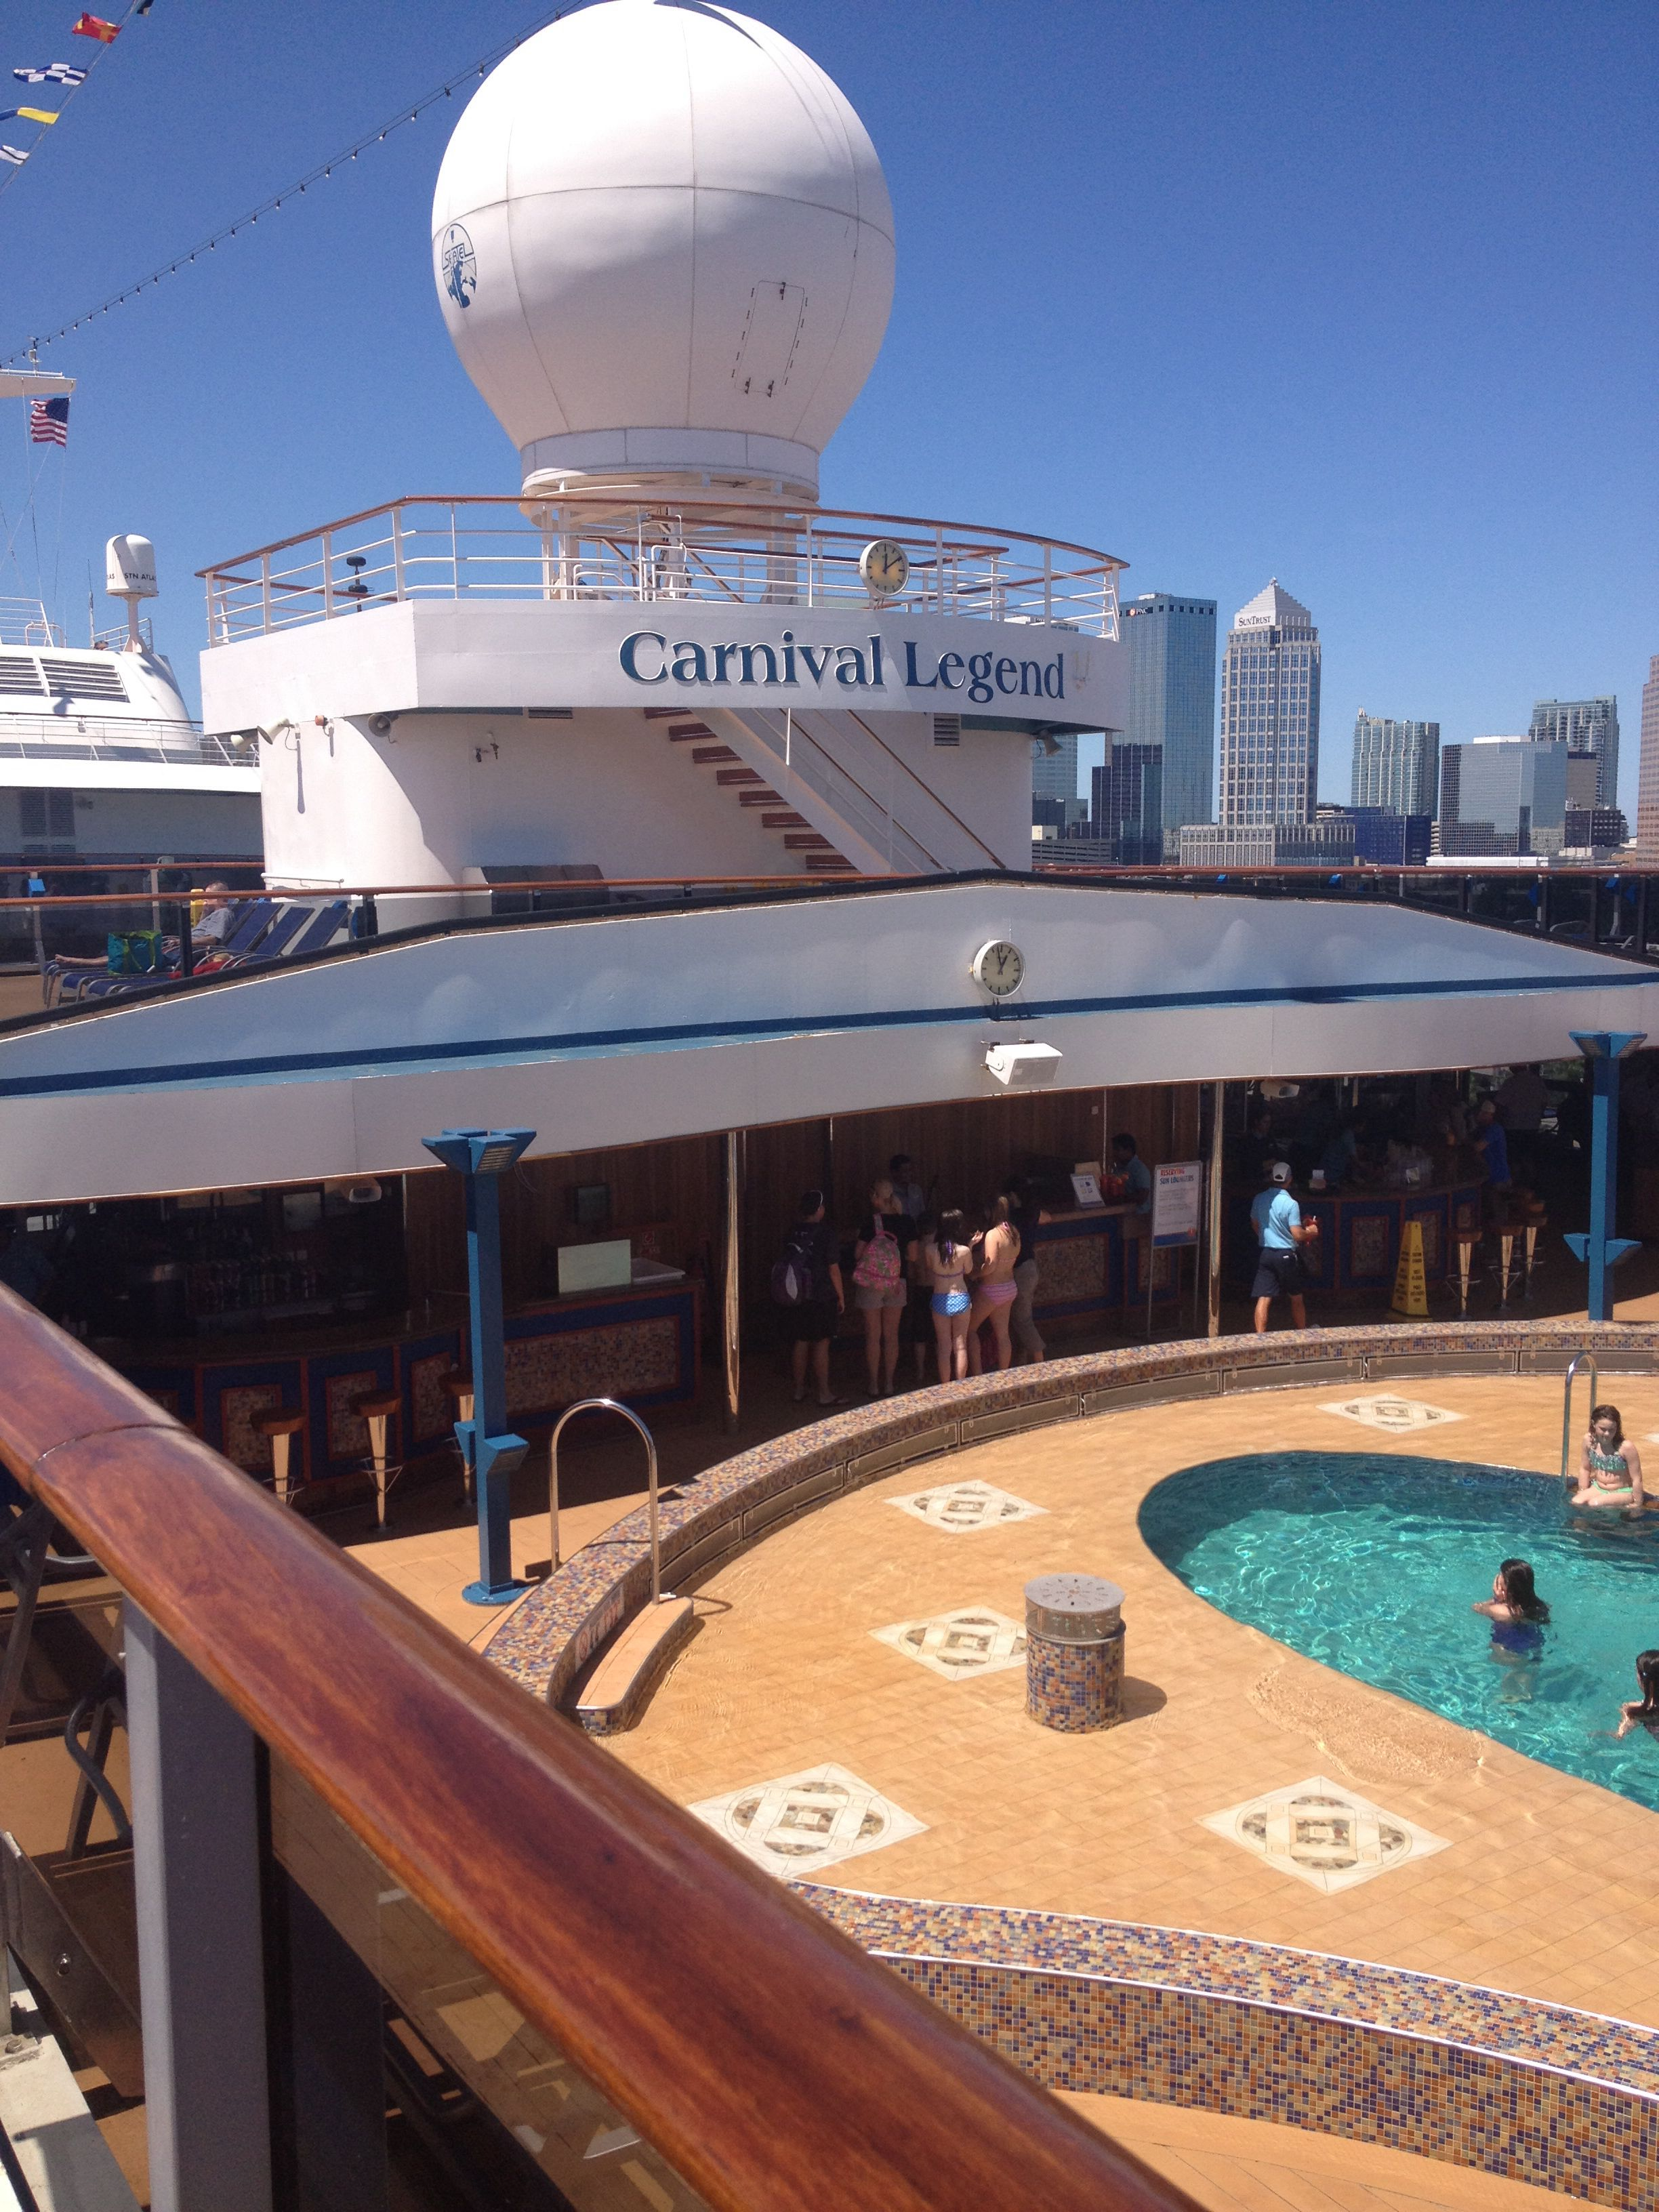 Carnival Legend - What A Great Time